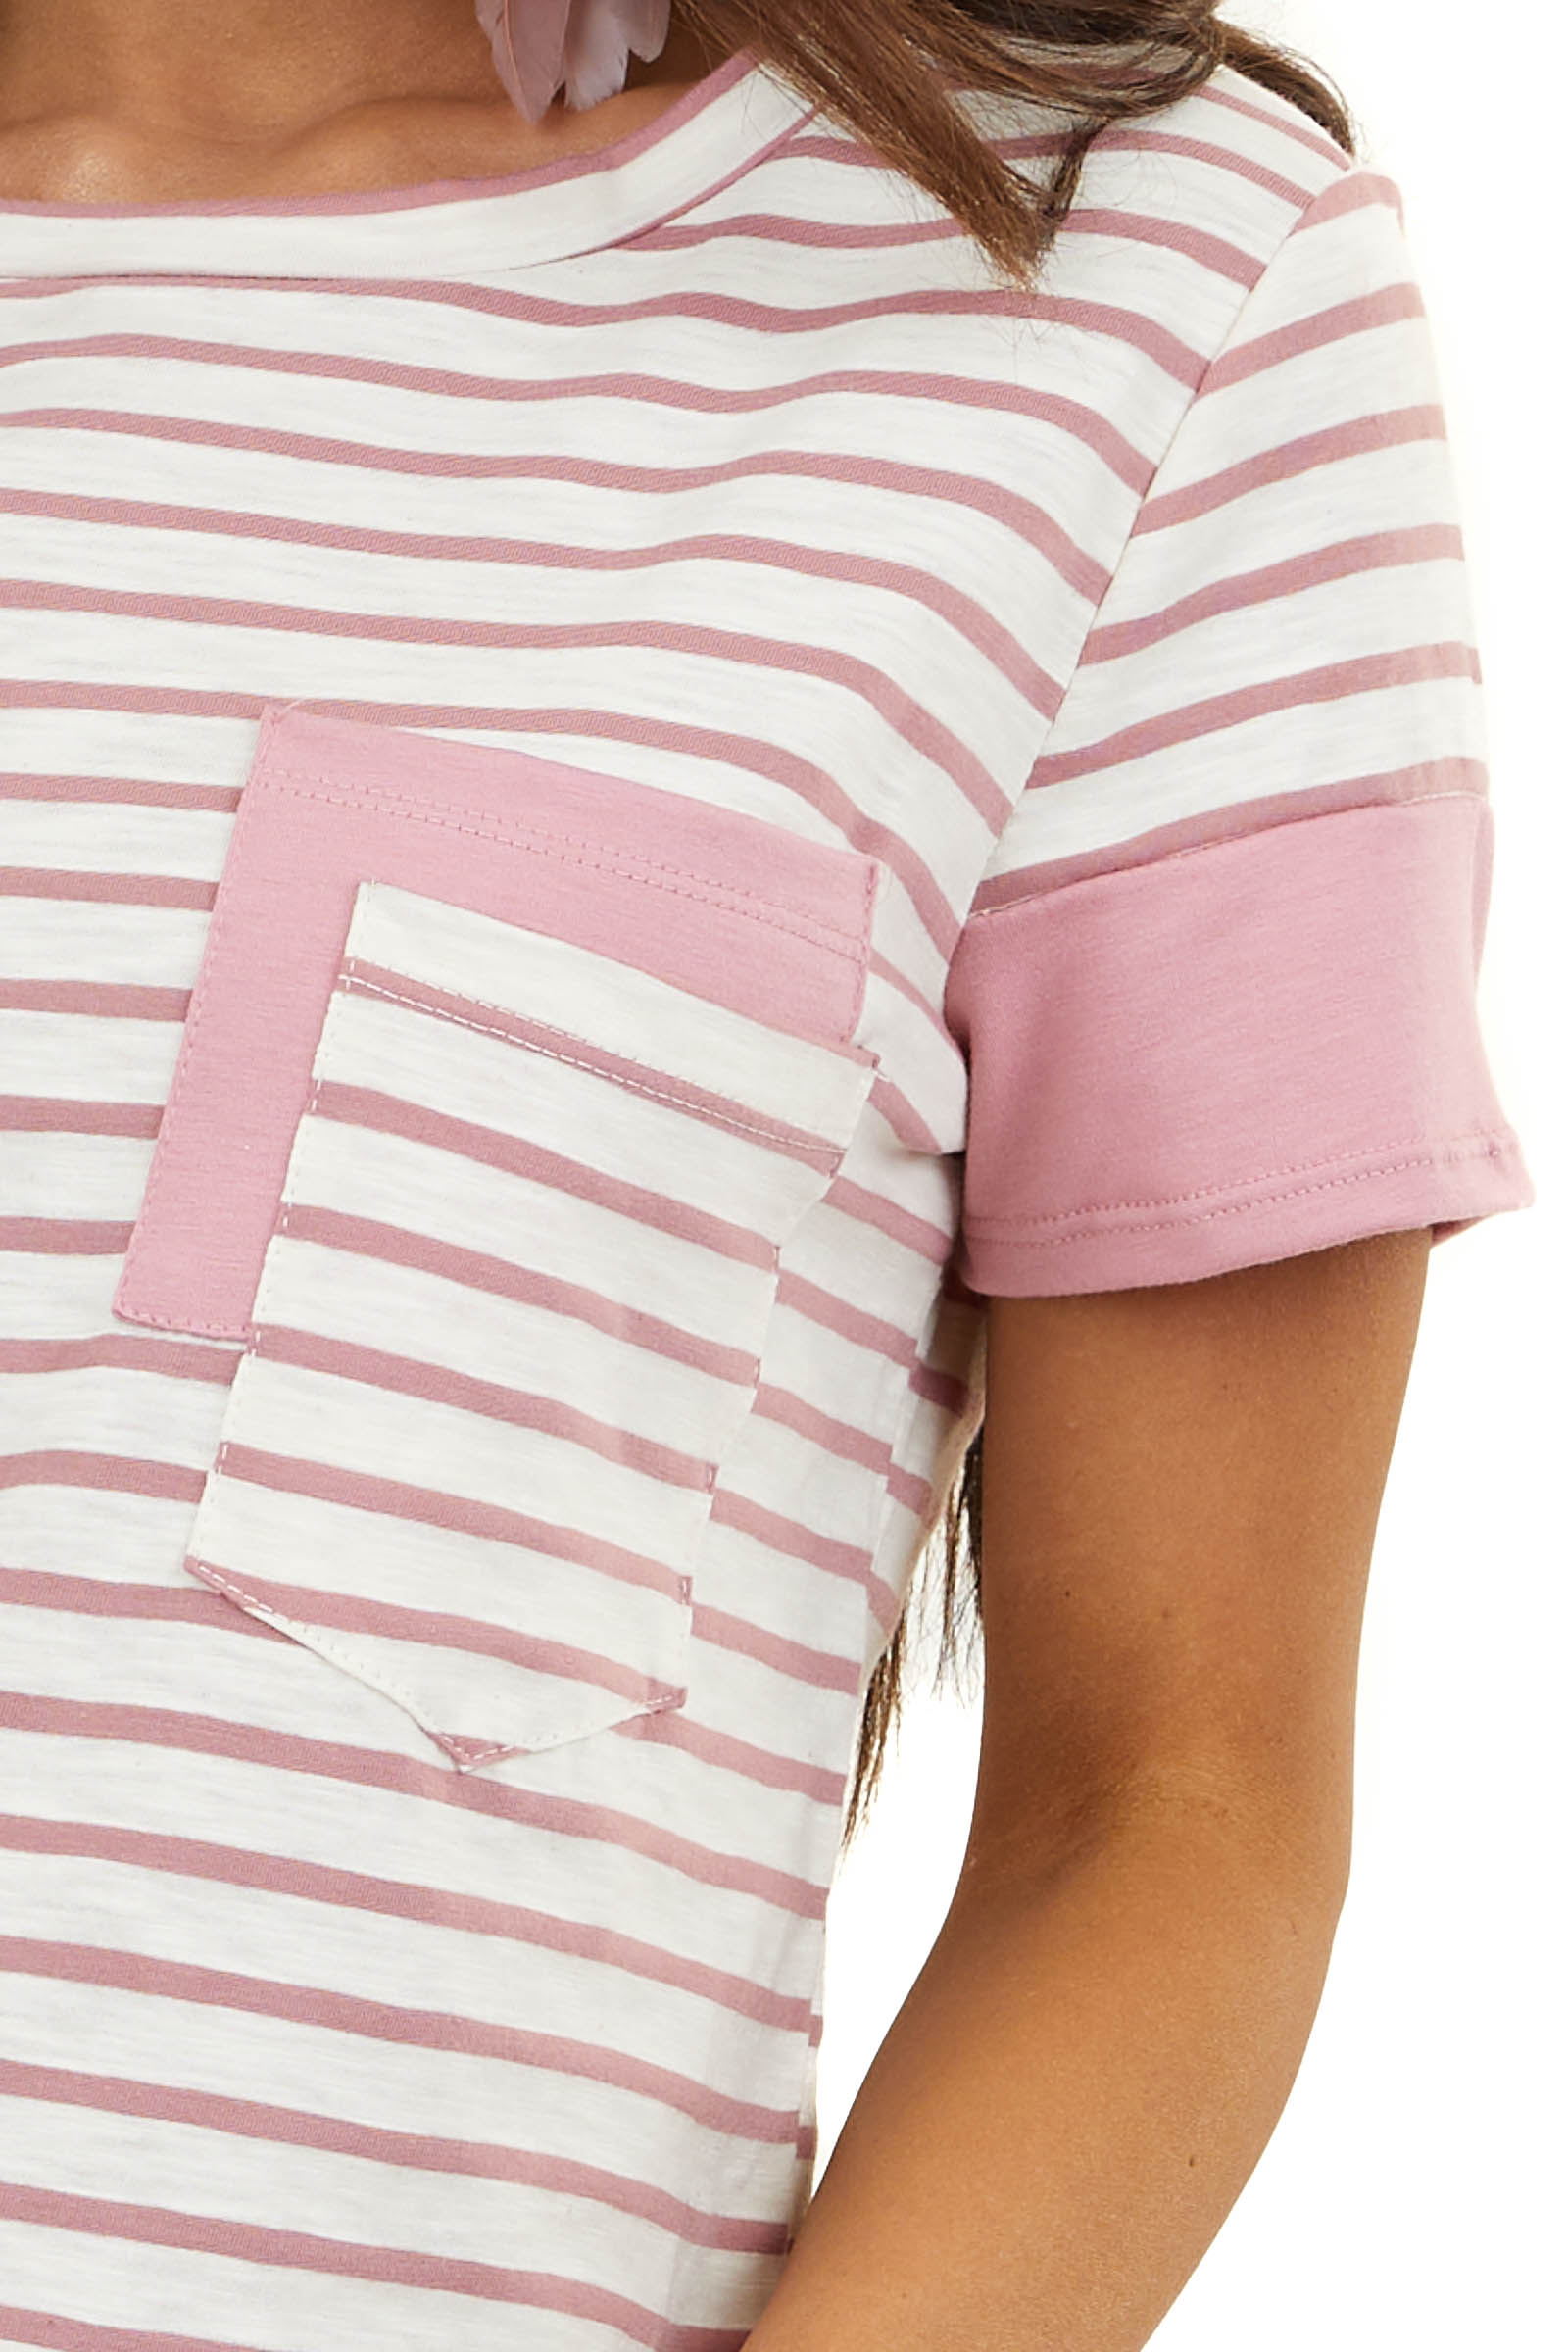 Ivory Striped Short Sleeve Top with Dusty Blush Contrast